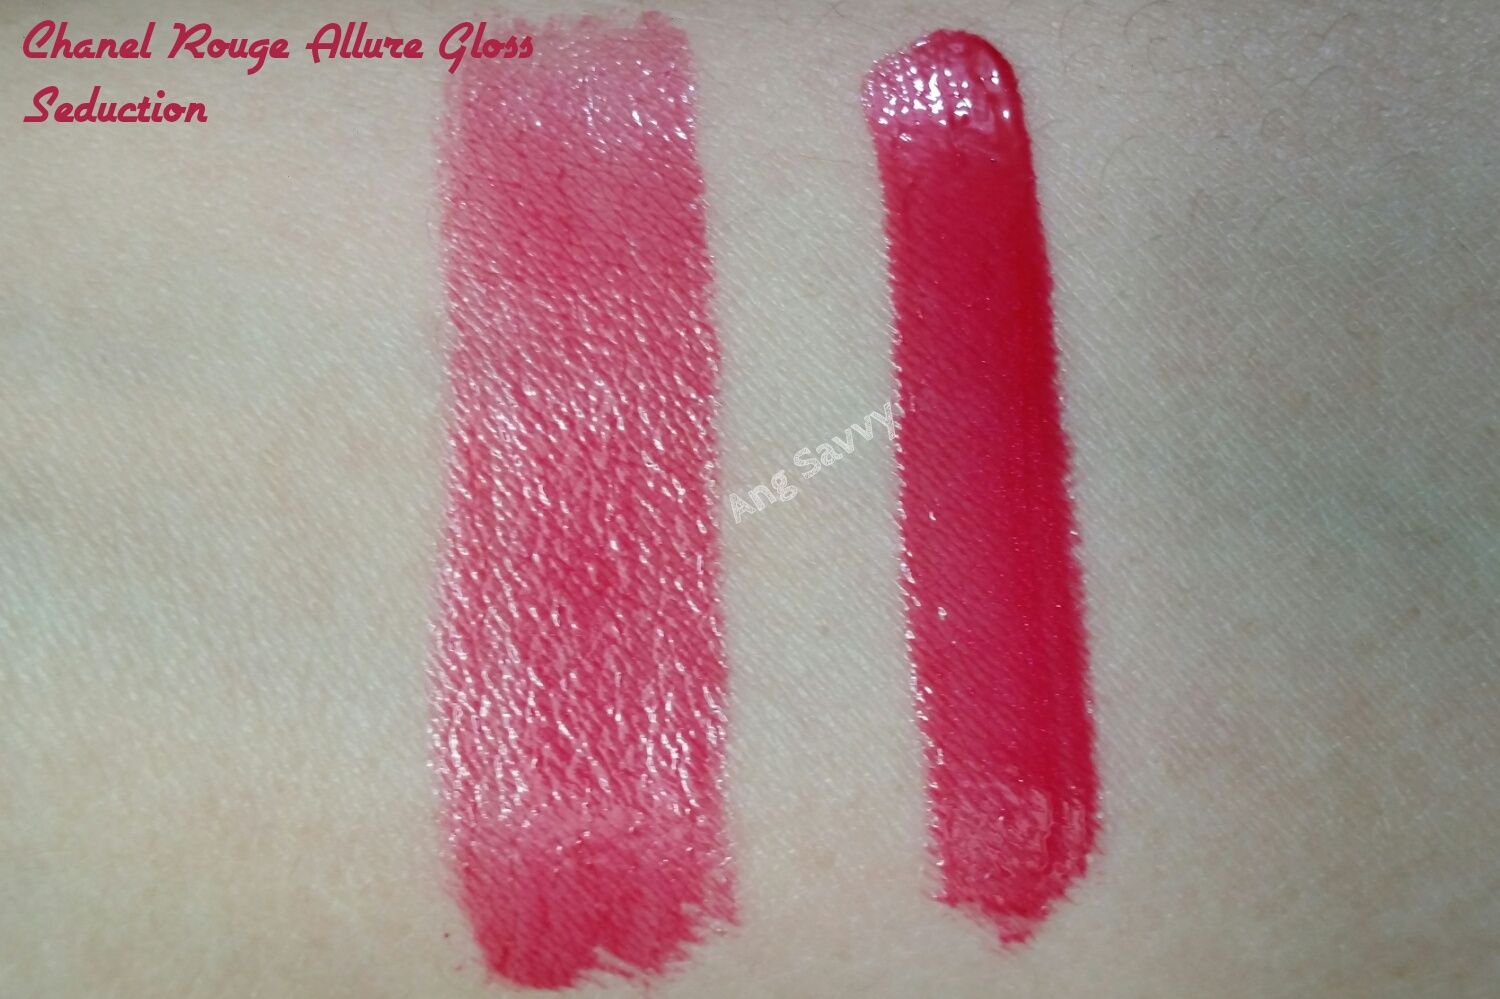 Chanel Rouge Allure Gloss 18 Seduction Swatch